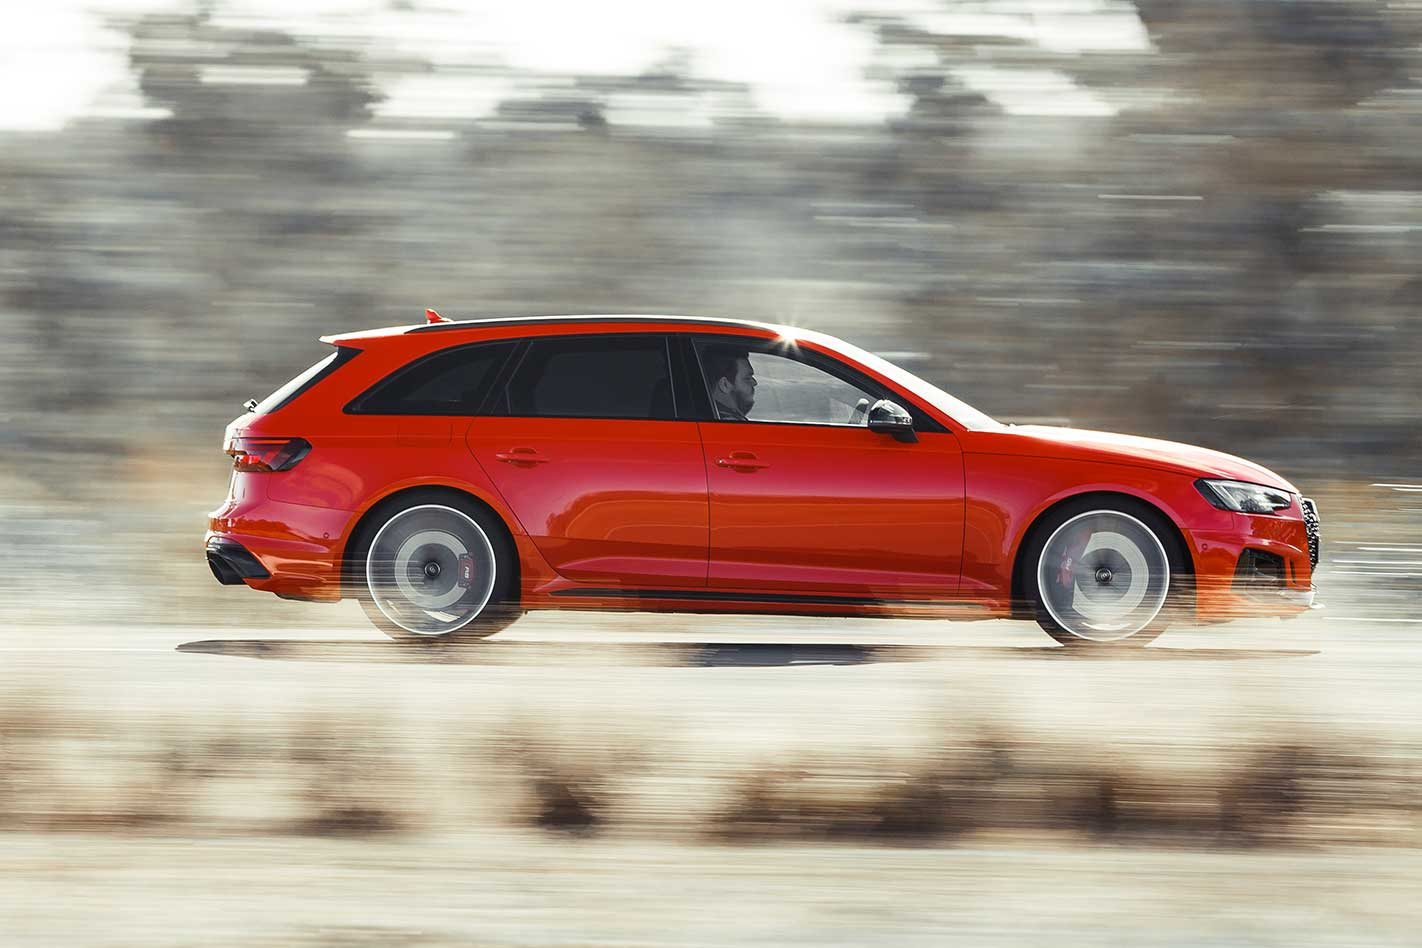 Here is how we can make station wagons popular again